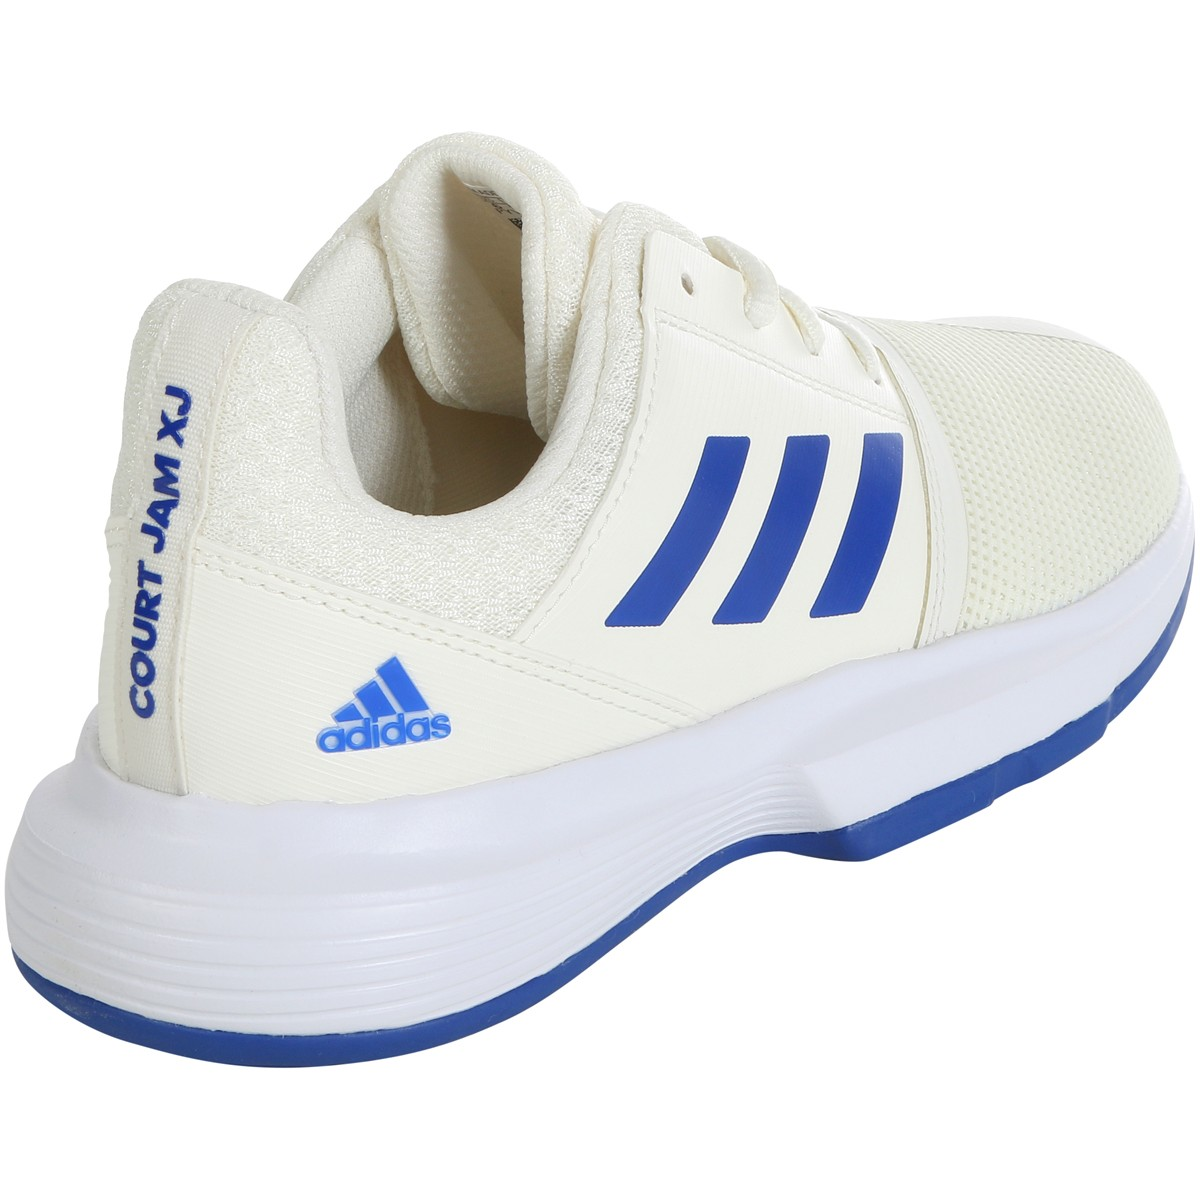 CHAUSSURES ADIDAS JUNIOR COURTJAM TOUTES SURFACES ADIDAS